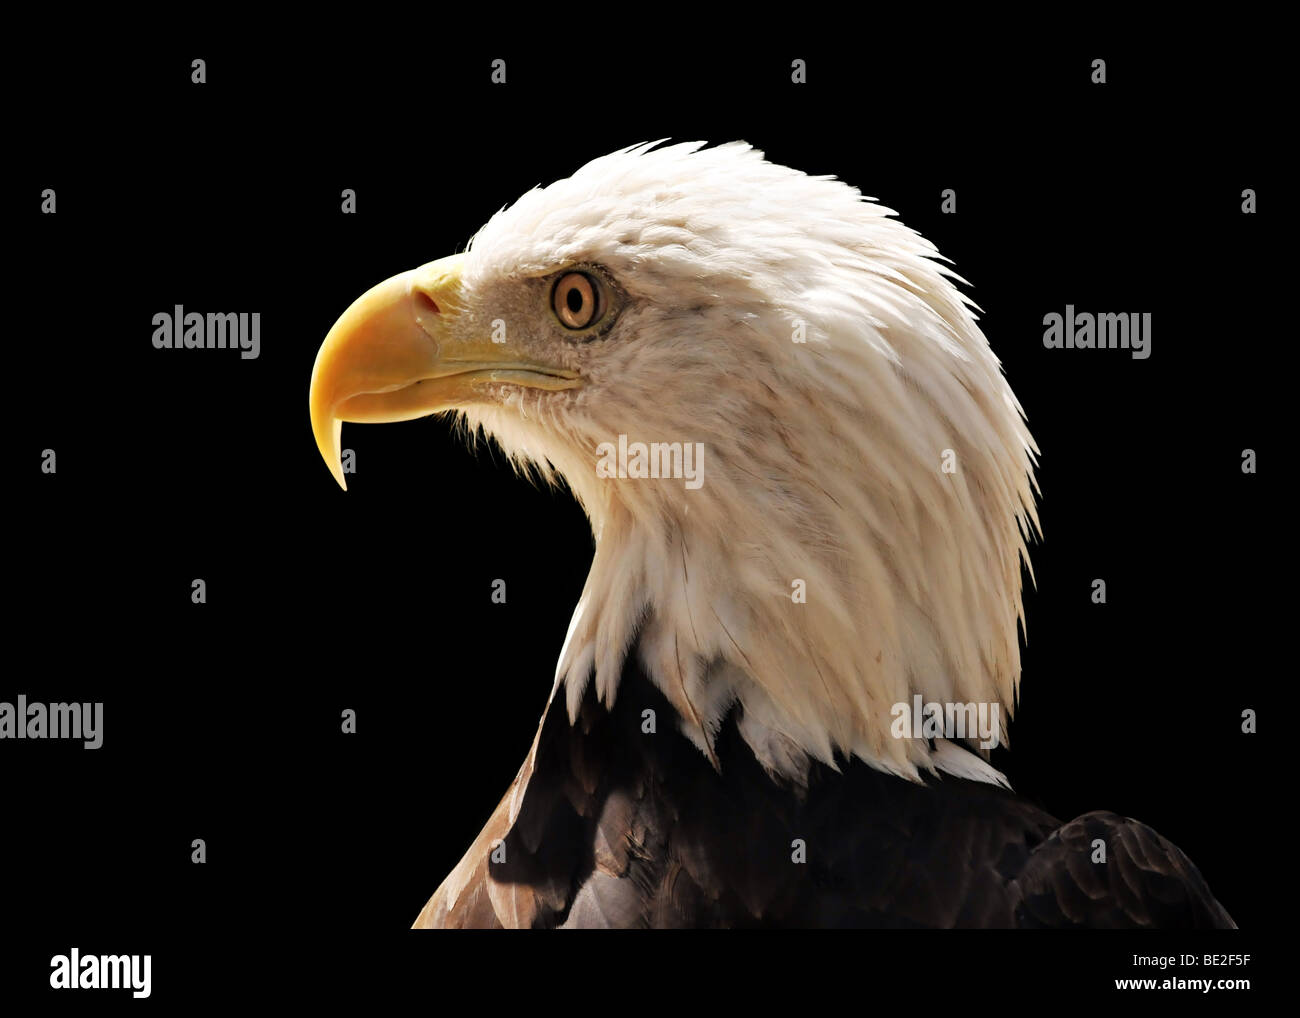 Head of bald eagle isolated over a black background Stock Photo